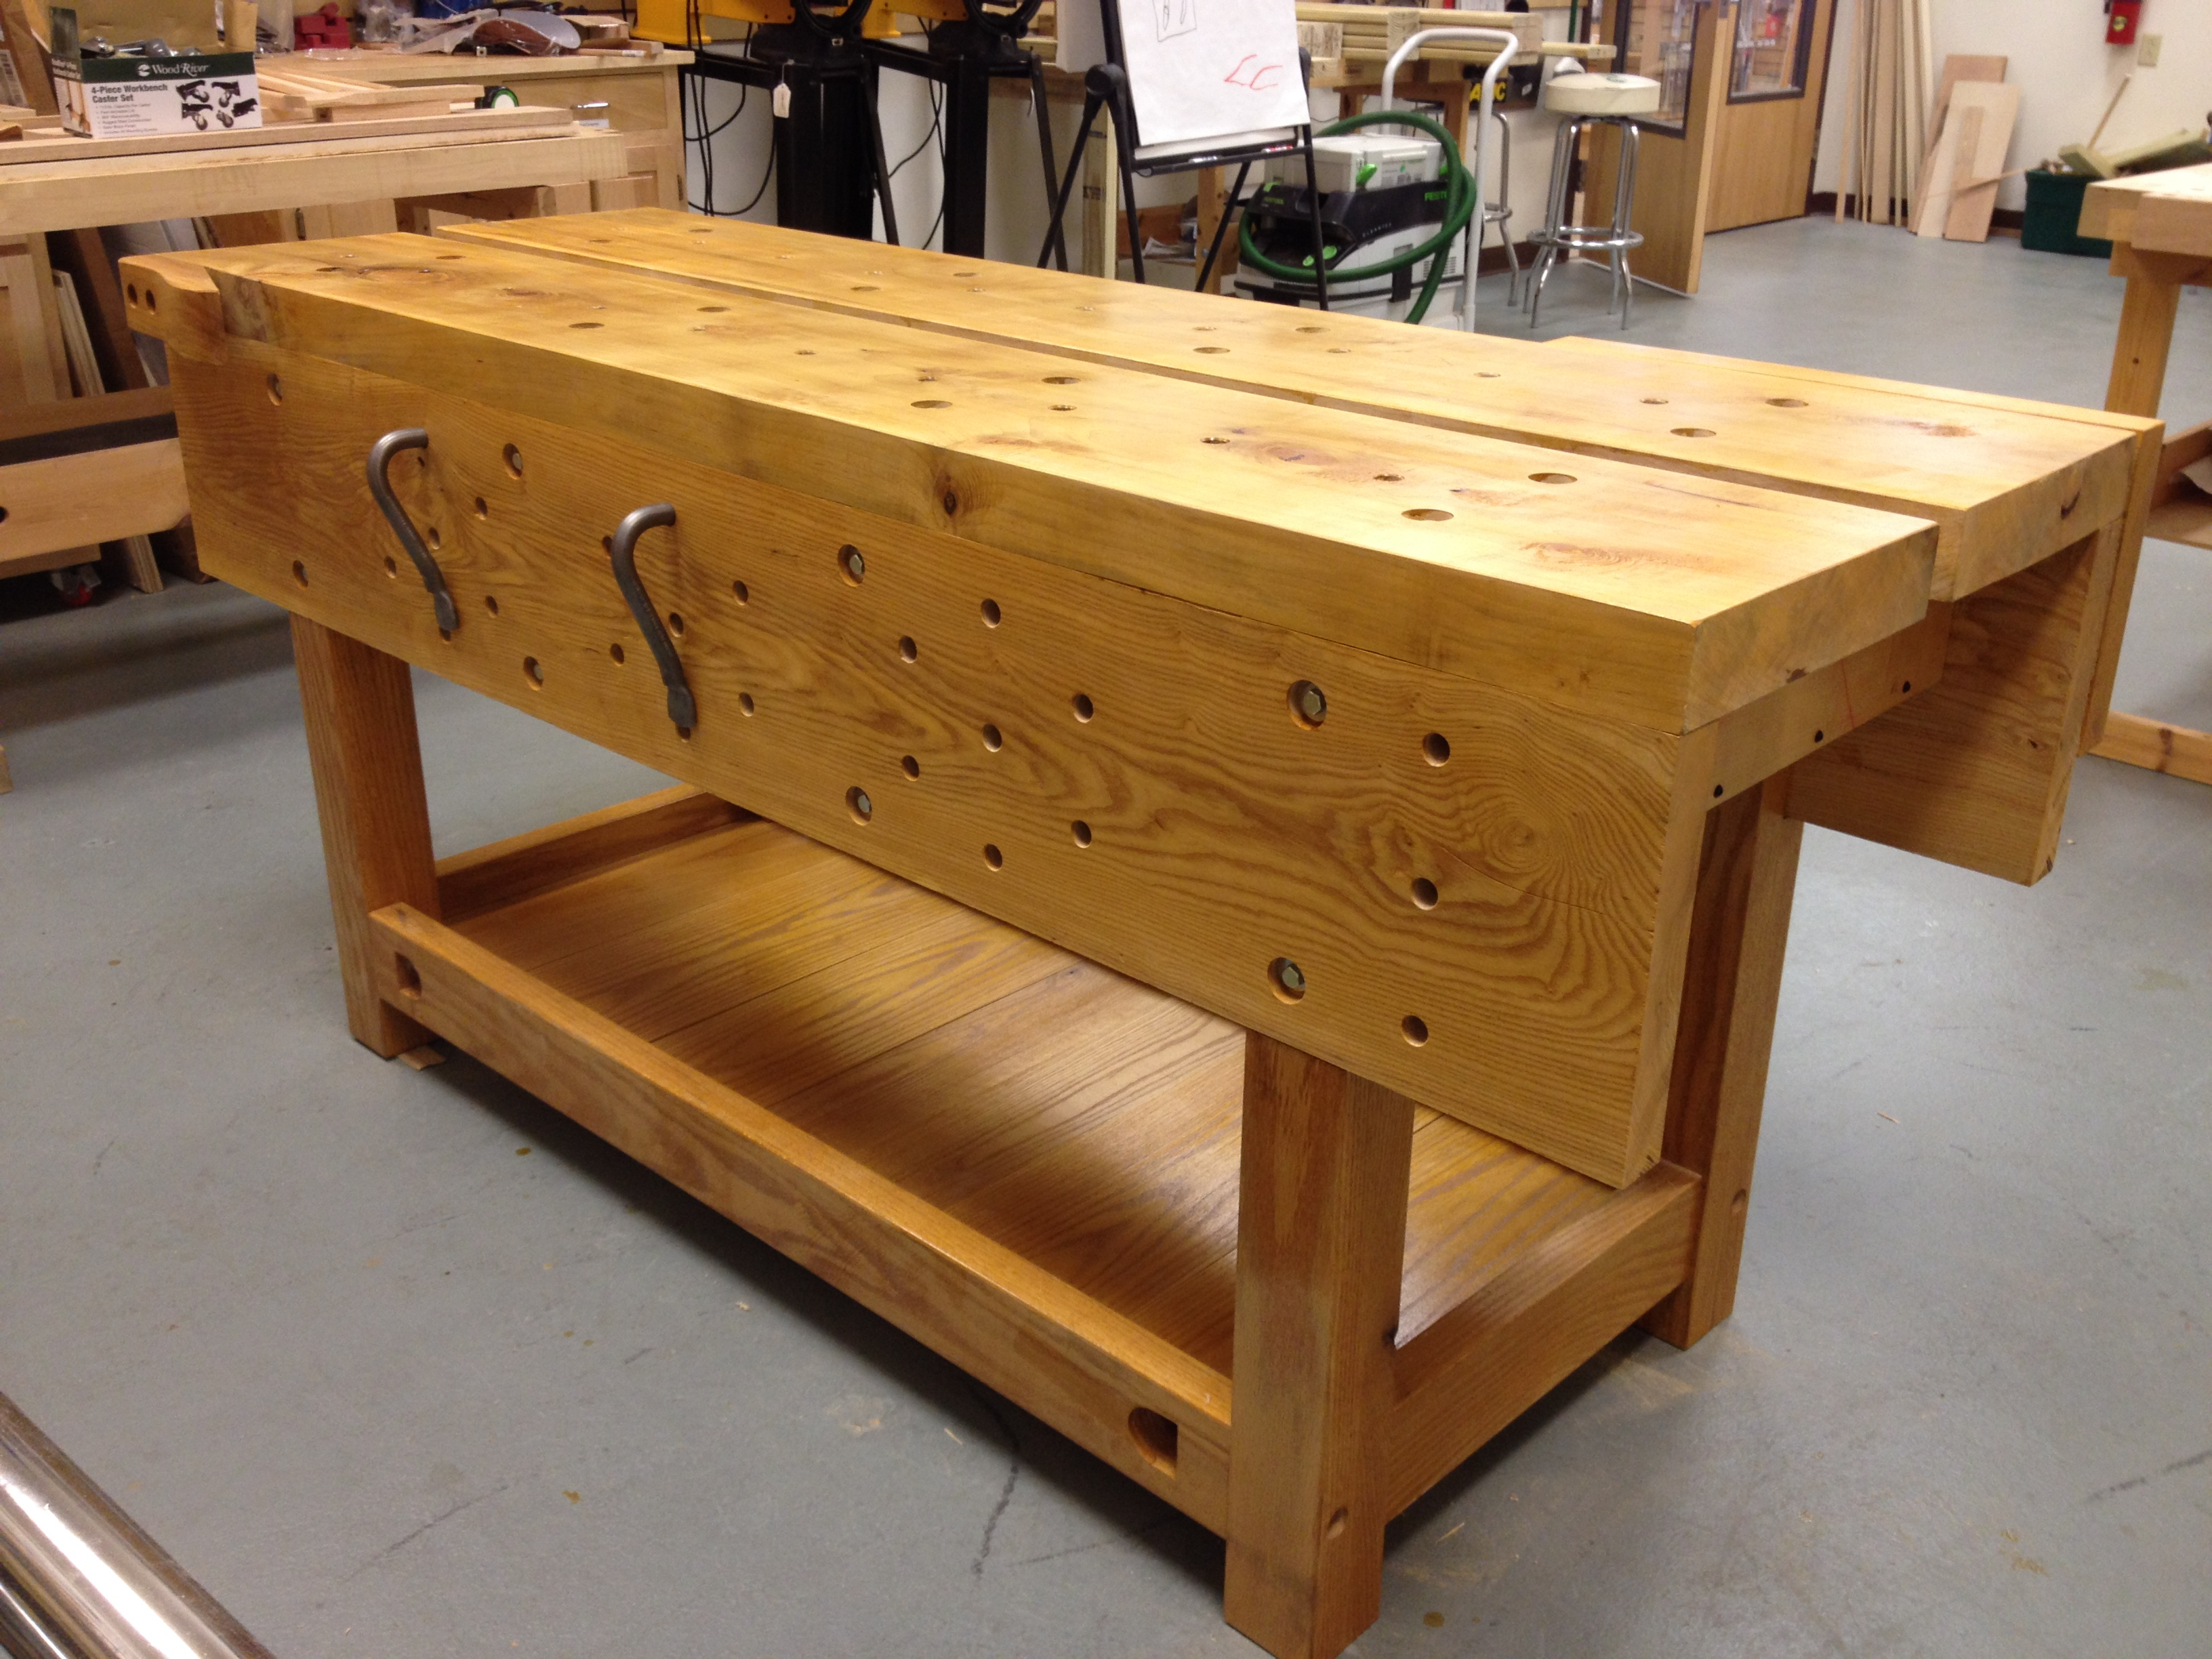 Nicholson Bench Project Shellac On A Workbench A